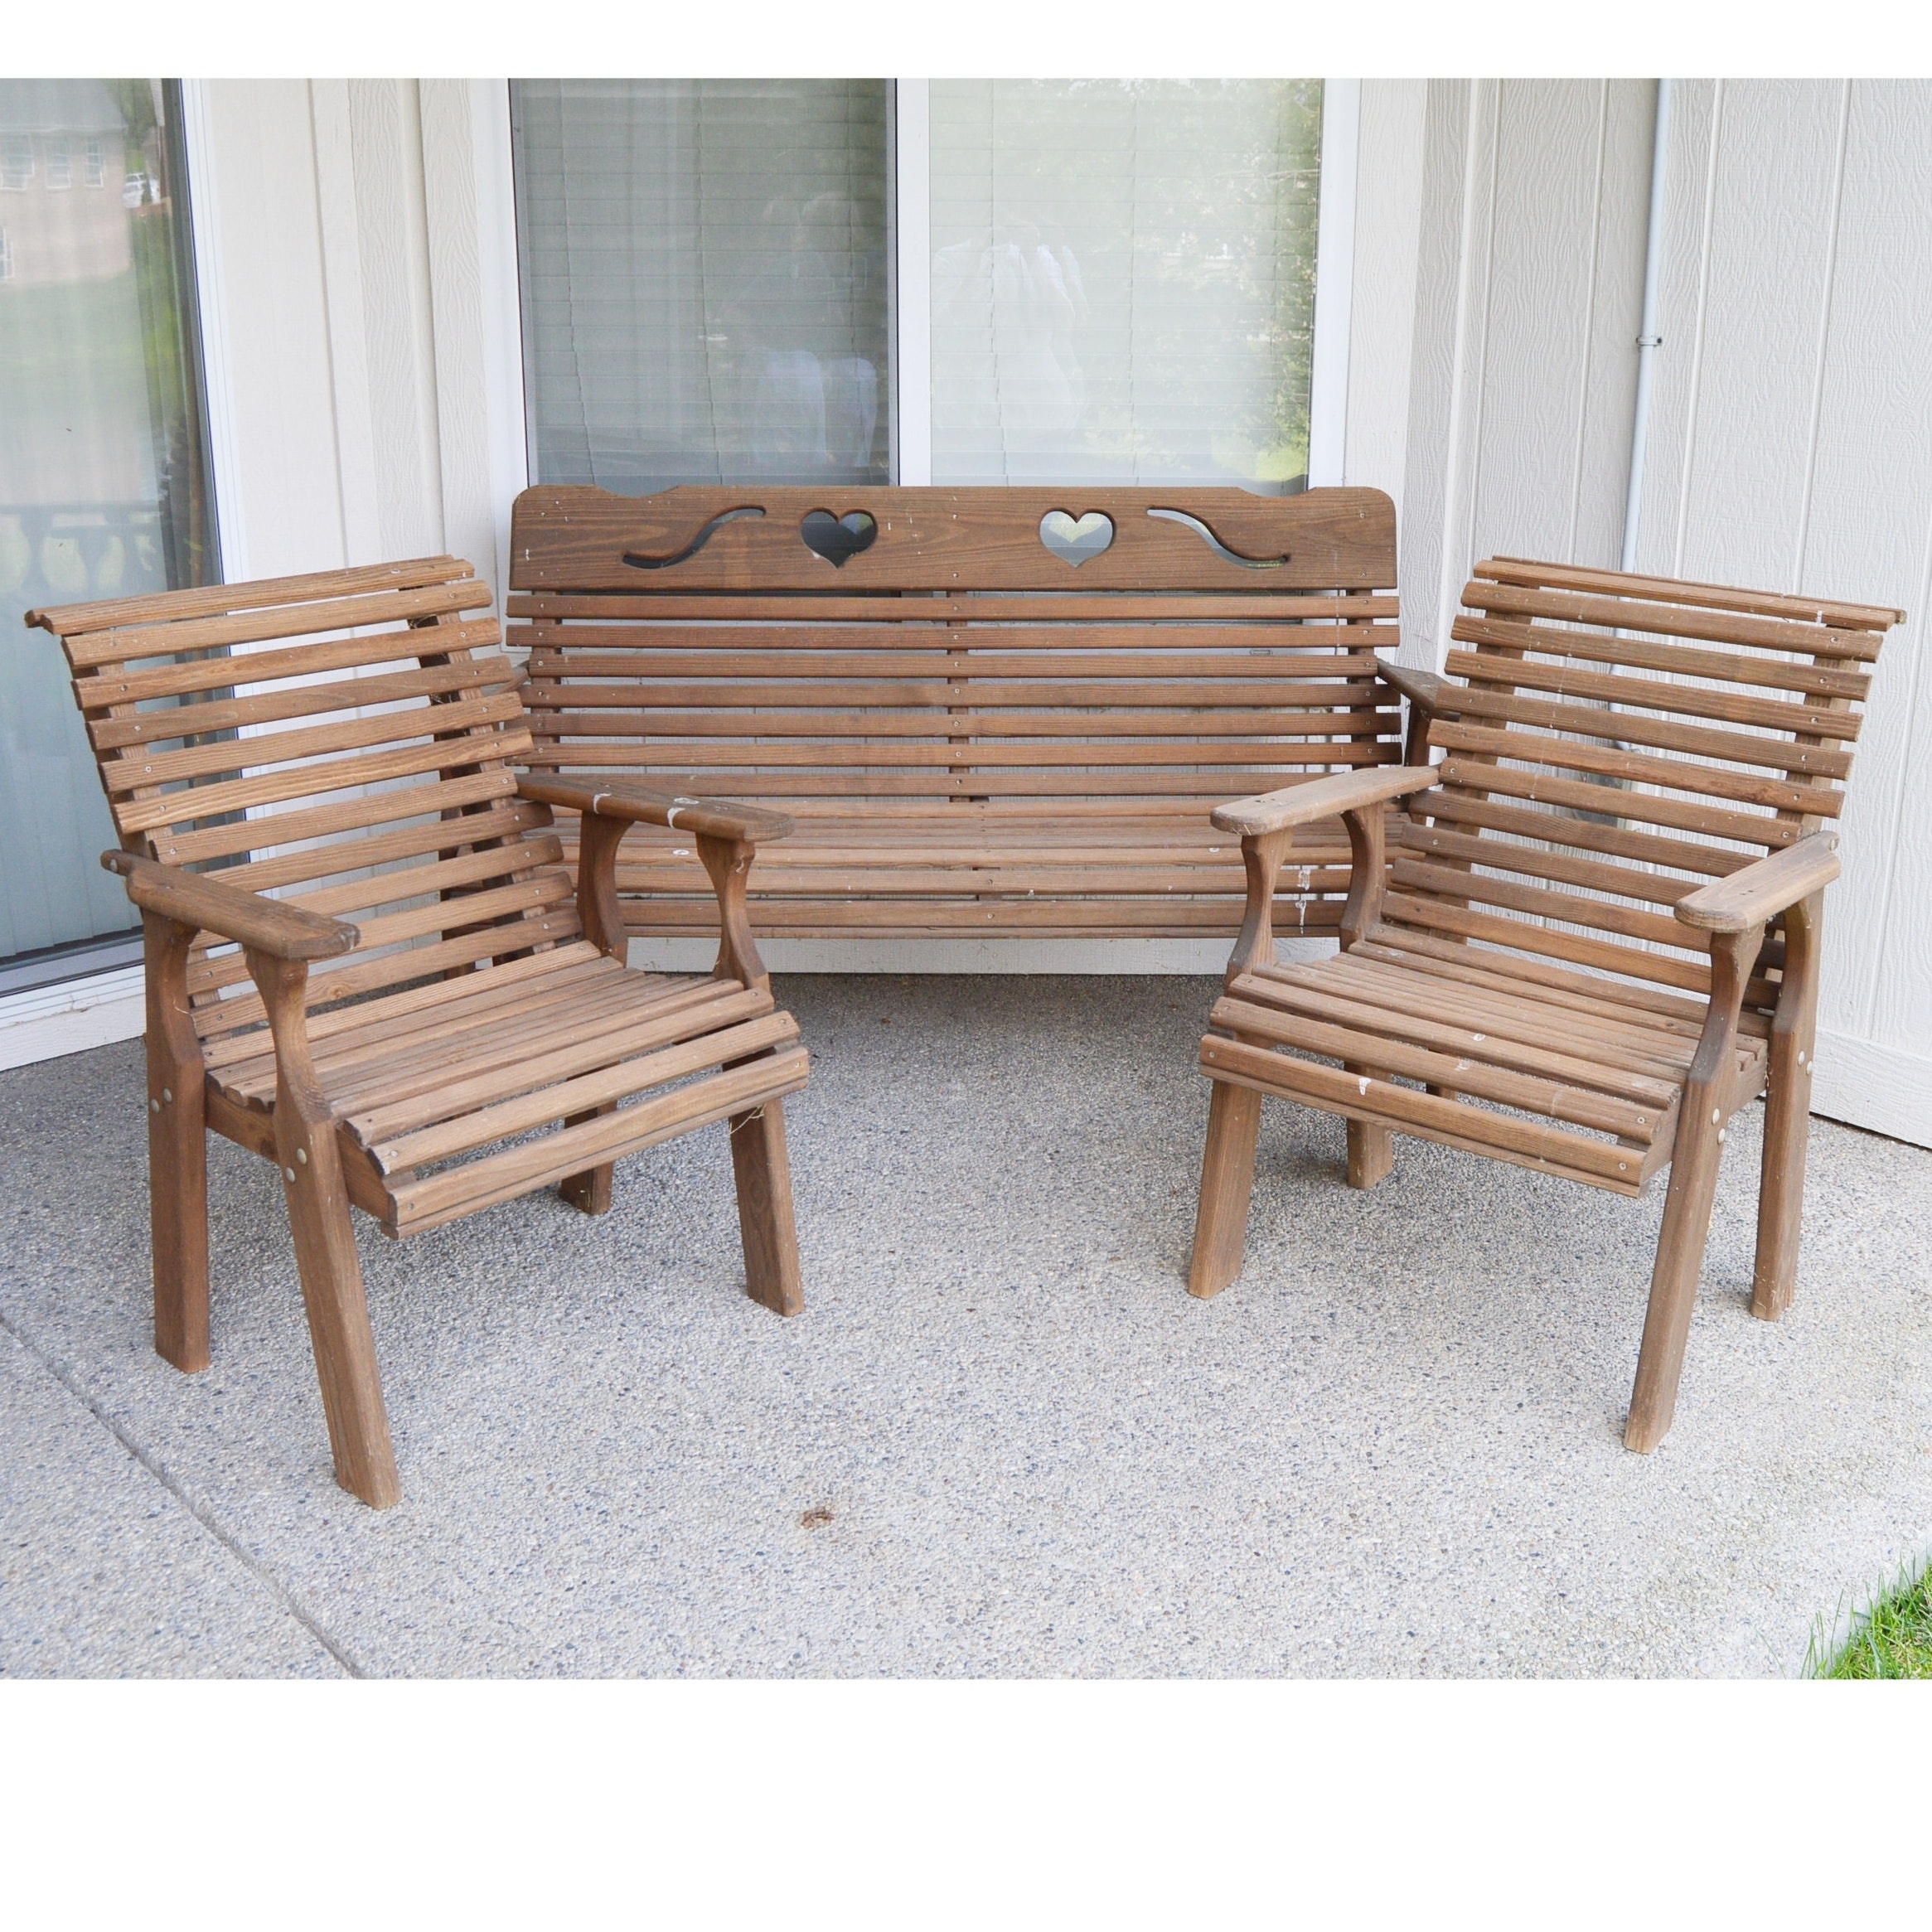 Pine Bench and Chairs